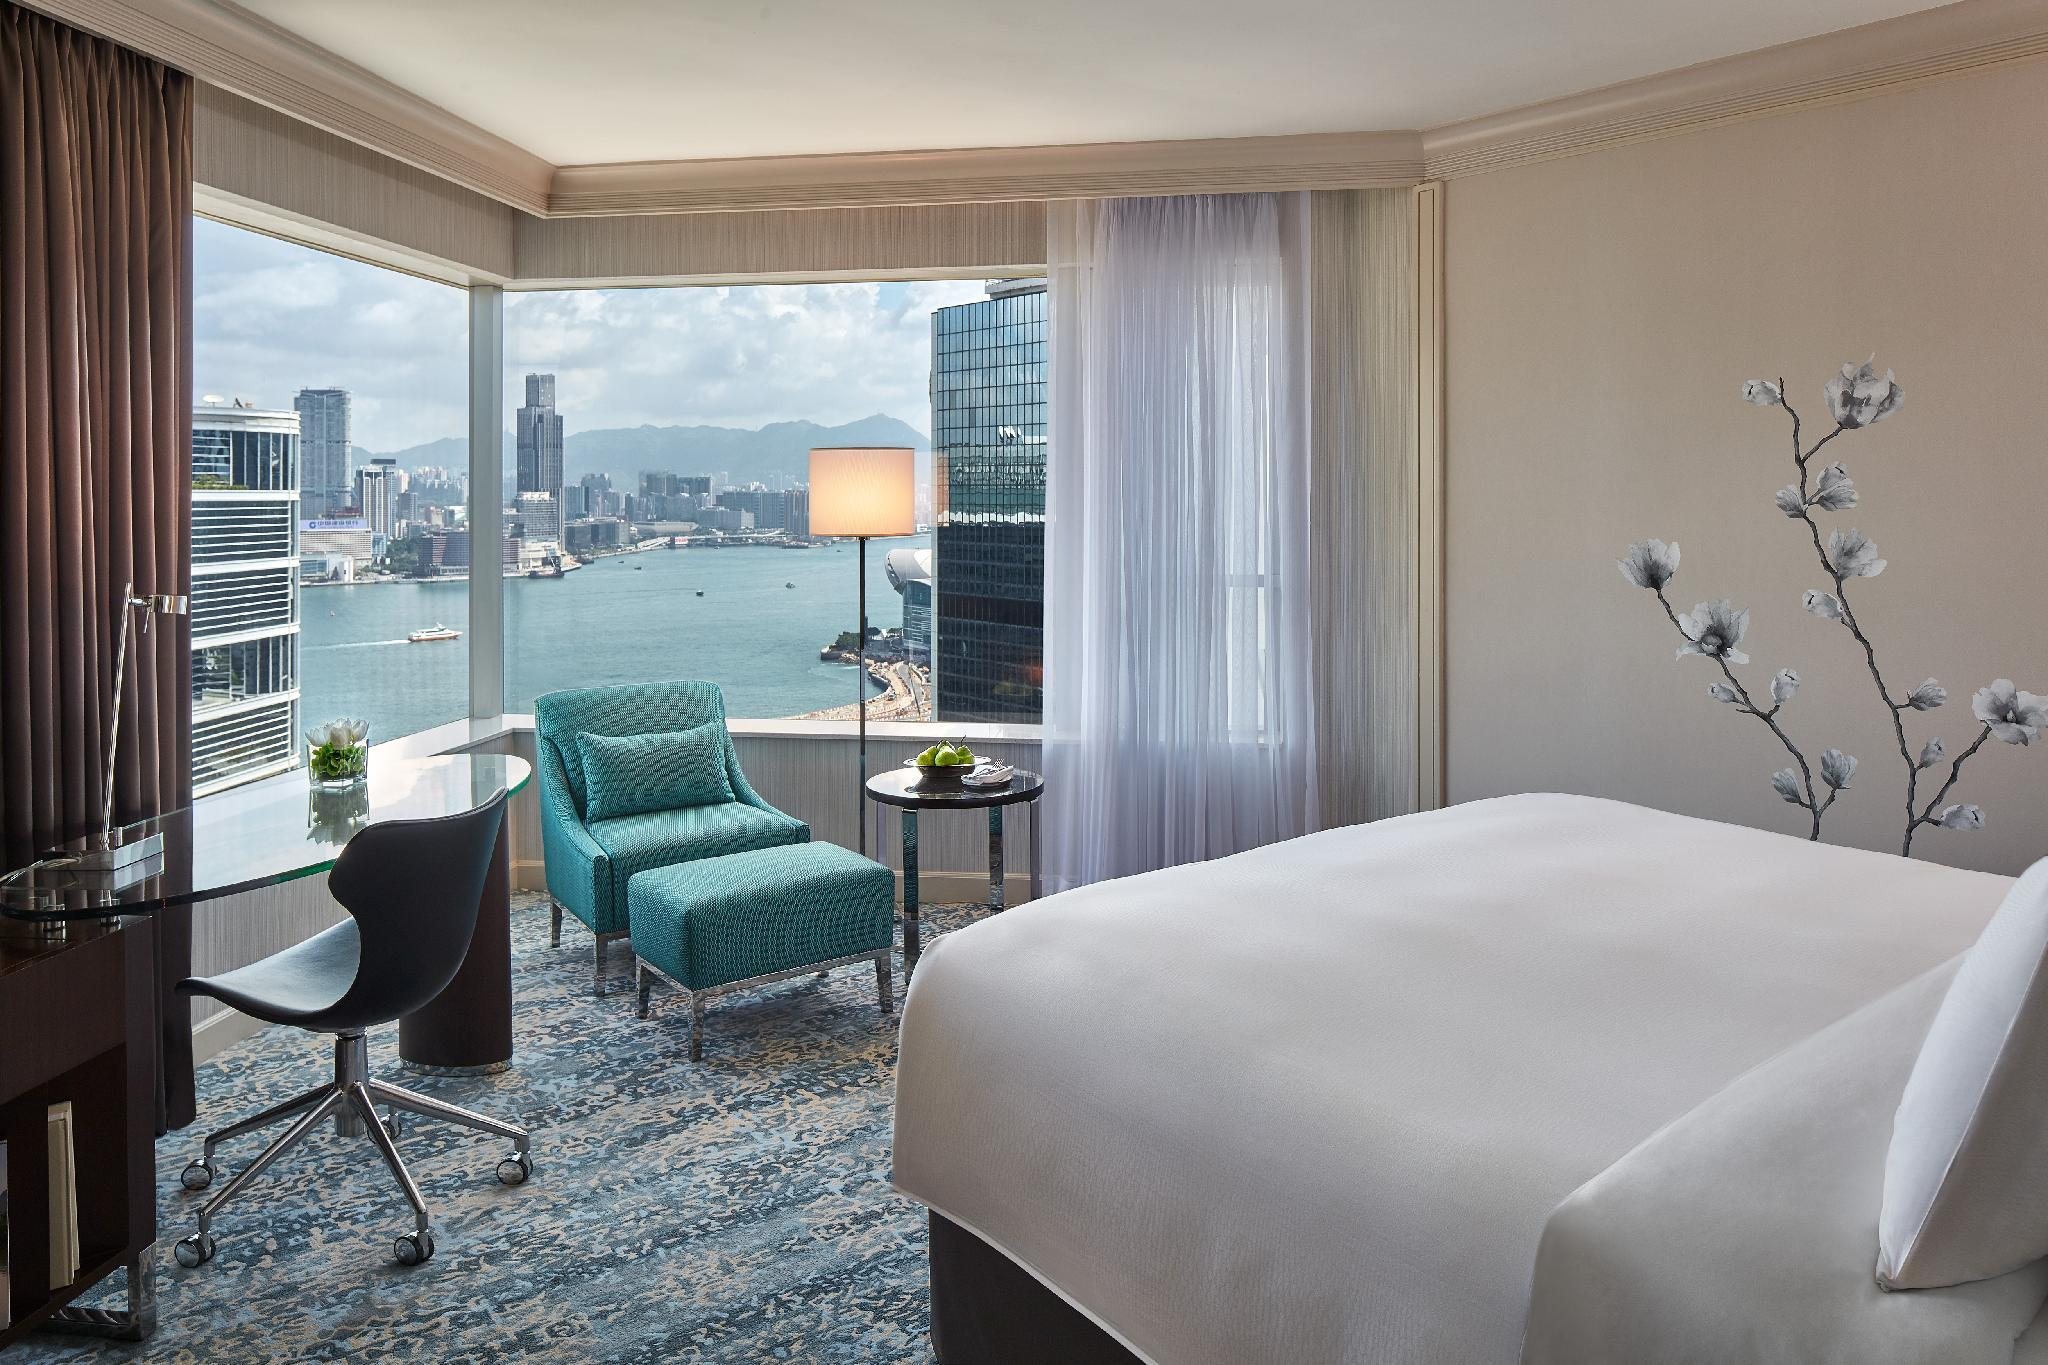 JW Suite, Harbour View, Executive lounge access, Harbor view